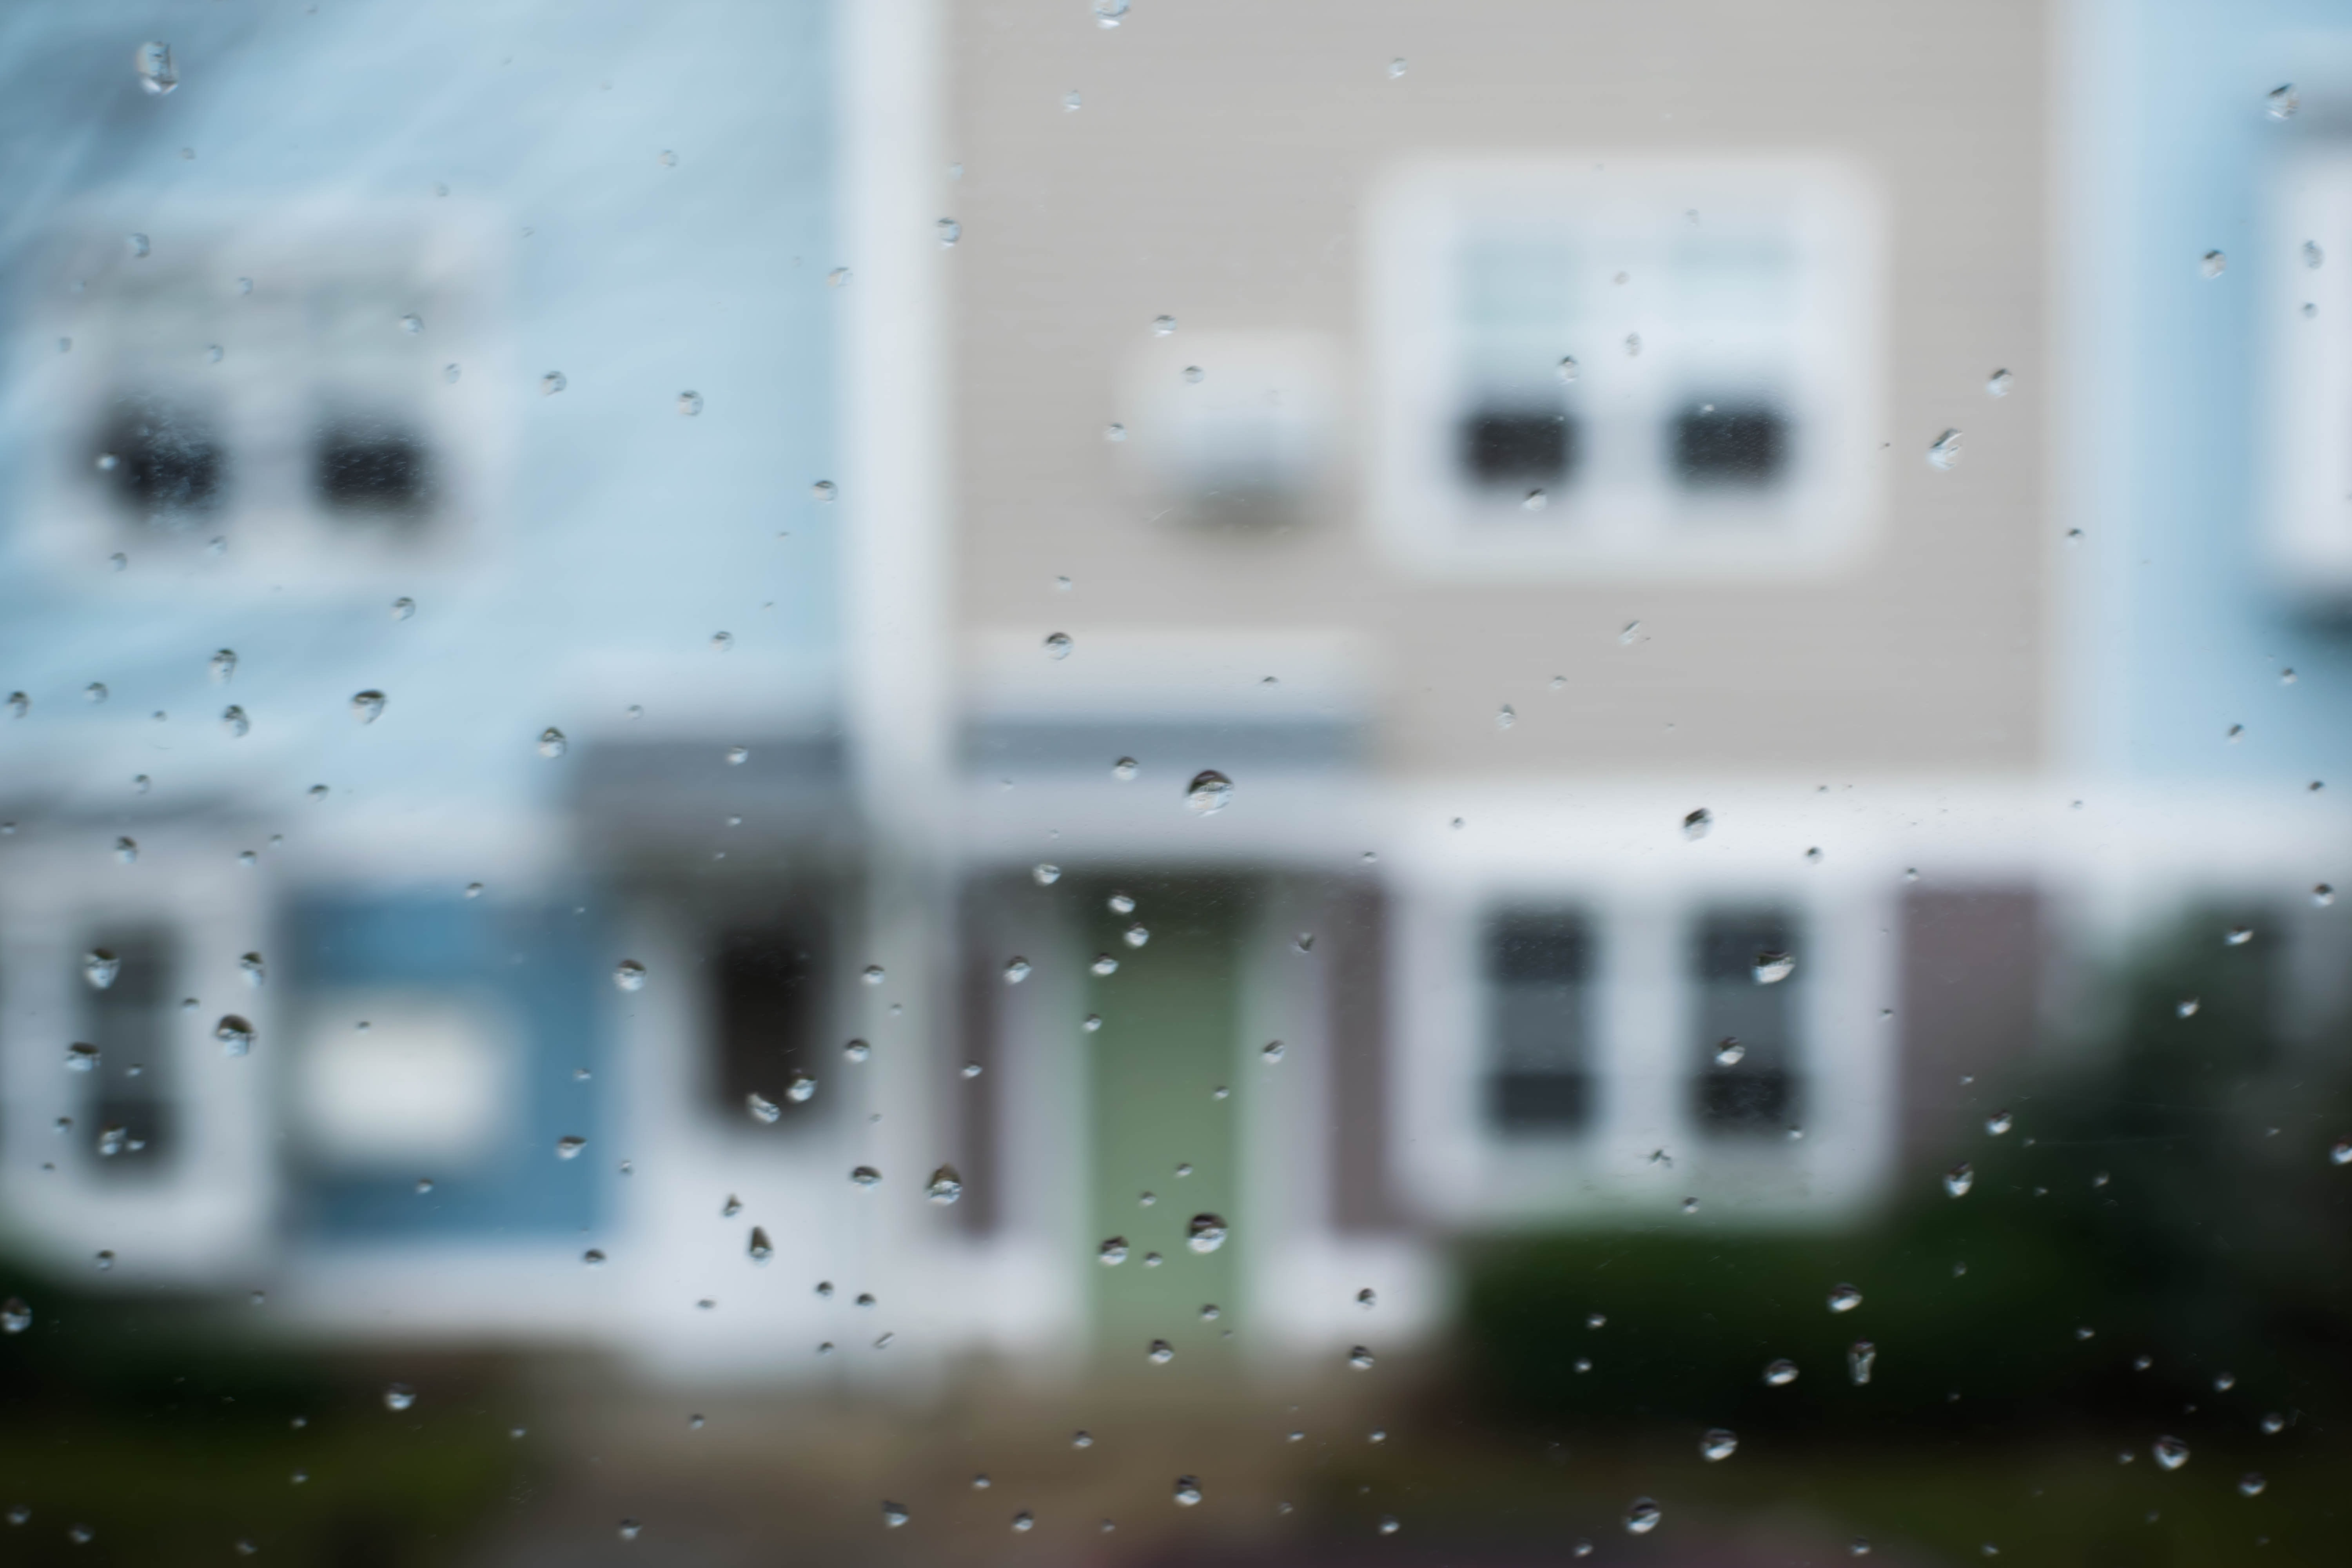 selective focus photography of rain droplets on vehicle window